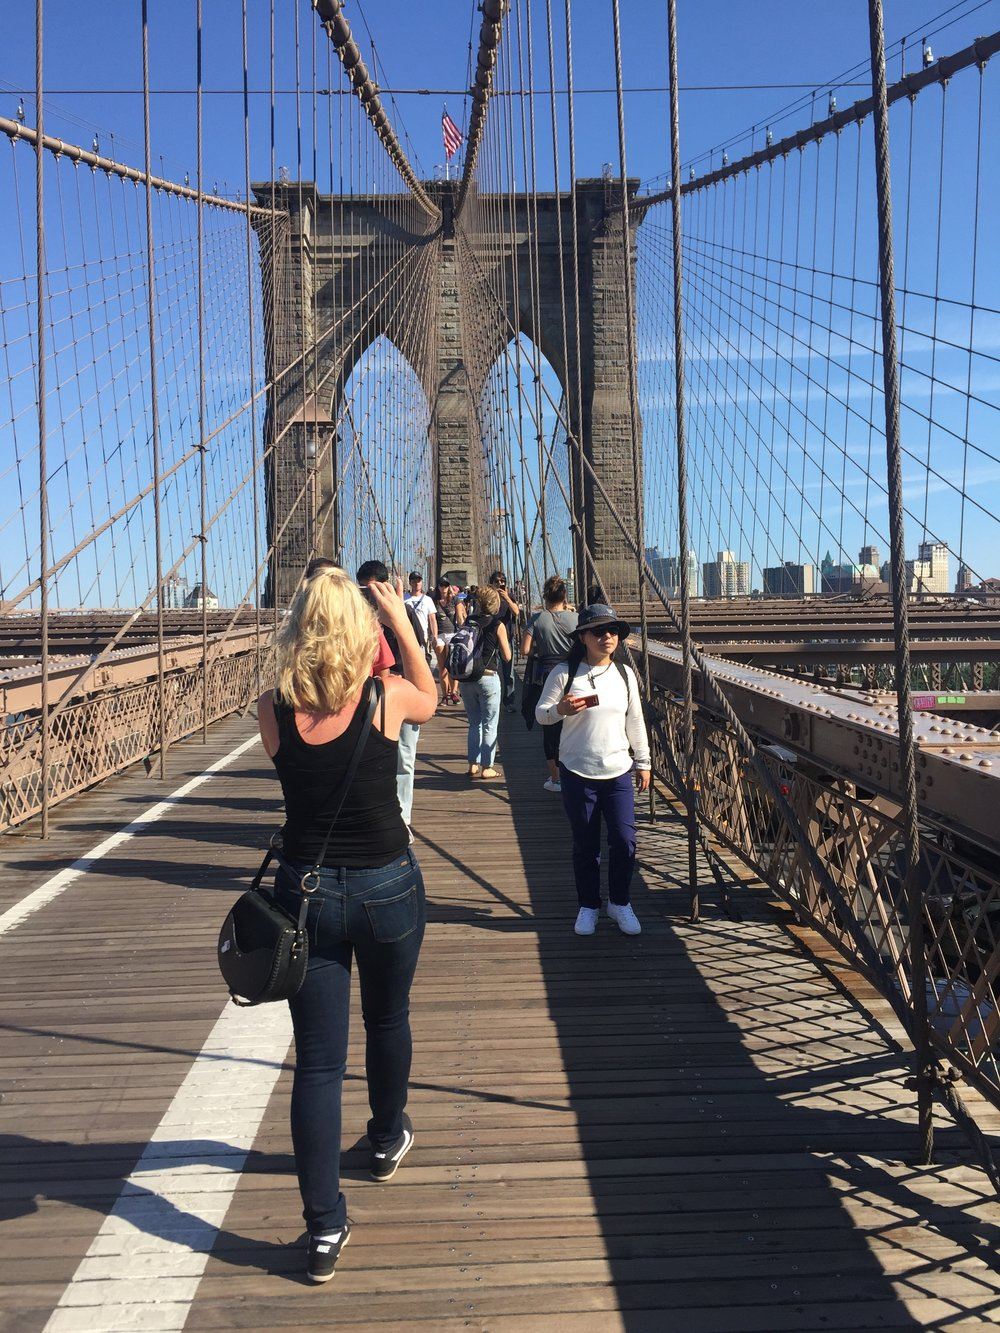 We took a couple mile walk over the Brooklyn Bridge then had a milkshake at a little deli on the other side.